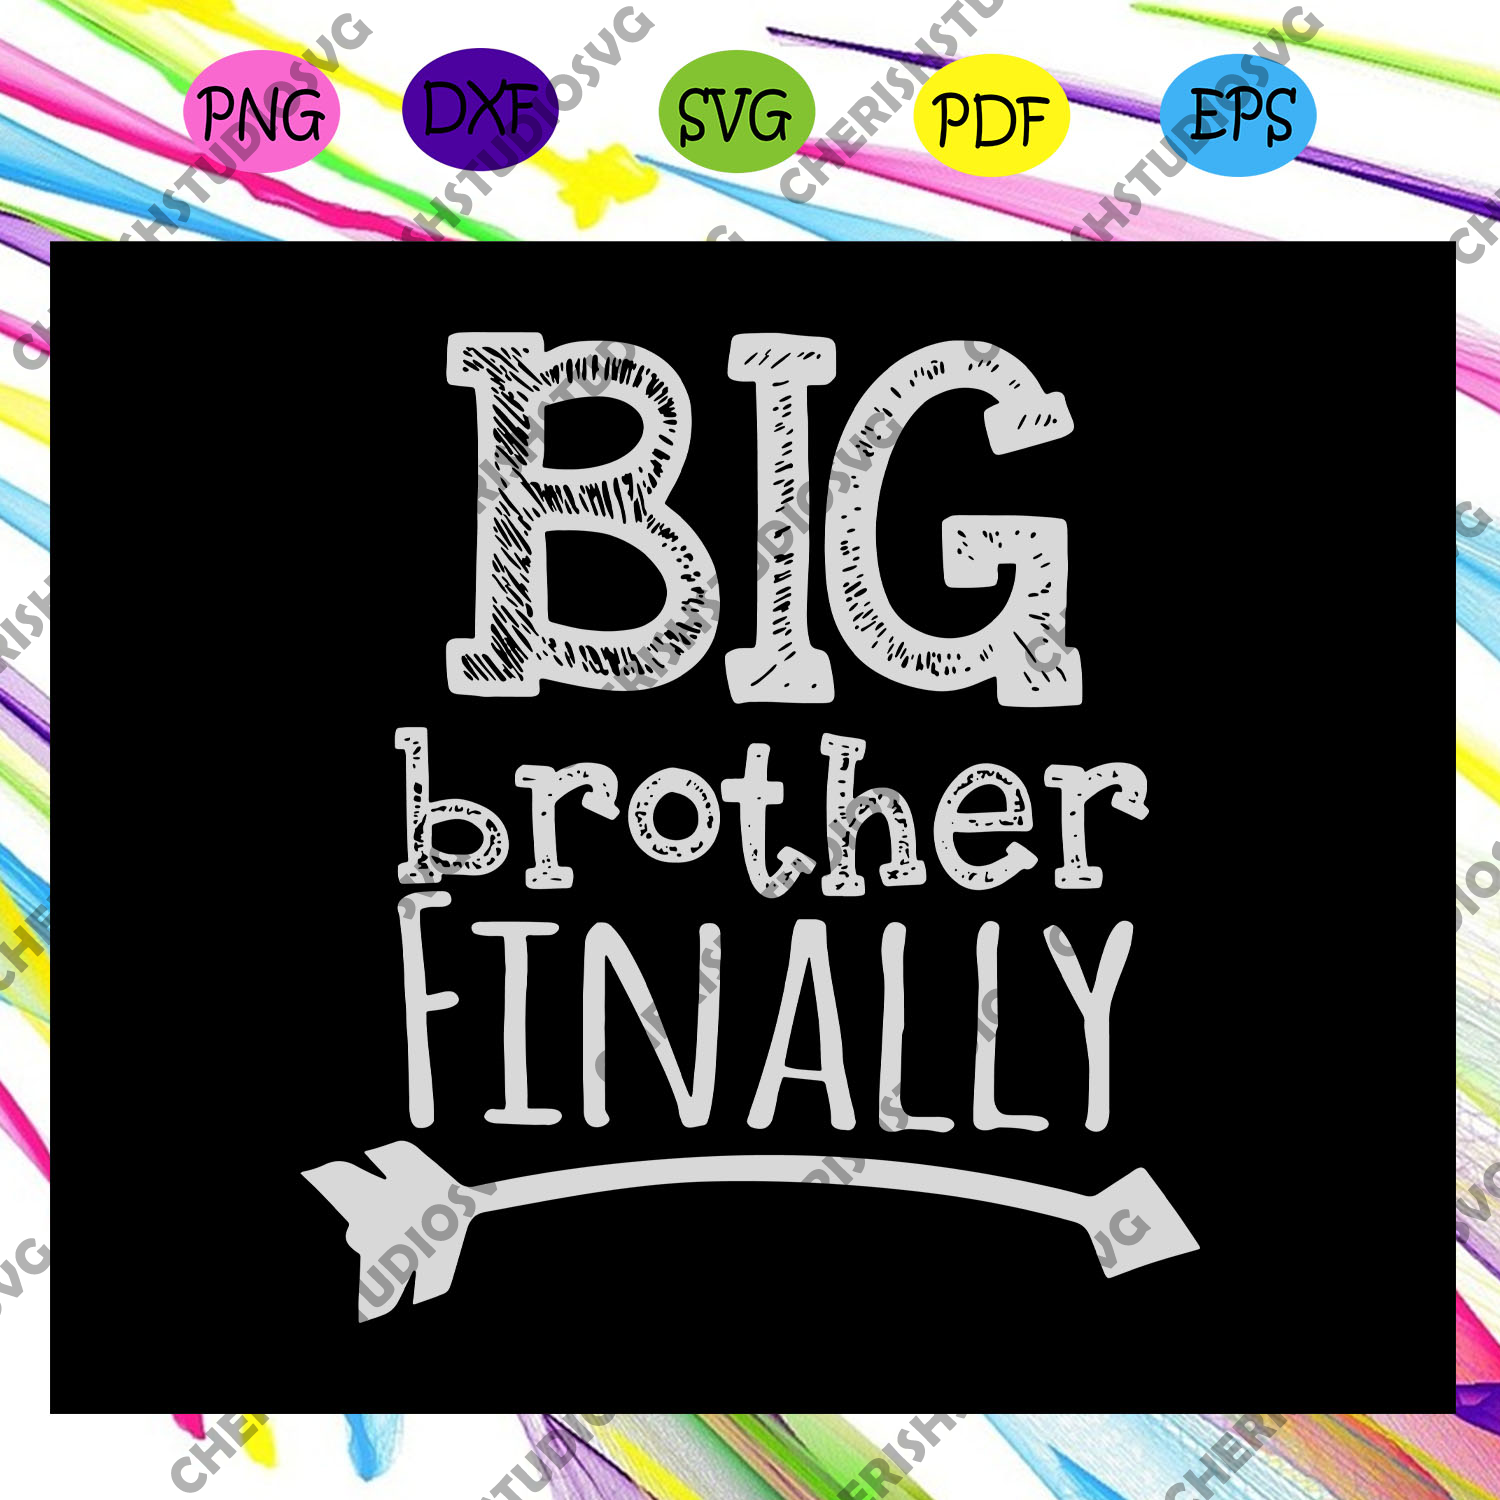 Big Brother Finally Svg, Novelty Svg, Gift For Big Brother, Big Brother Gift Svg, Brother 2020 For Silhouette, Files For Cricut, SVG, DXF, EPS, PNG Instant Download